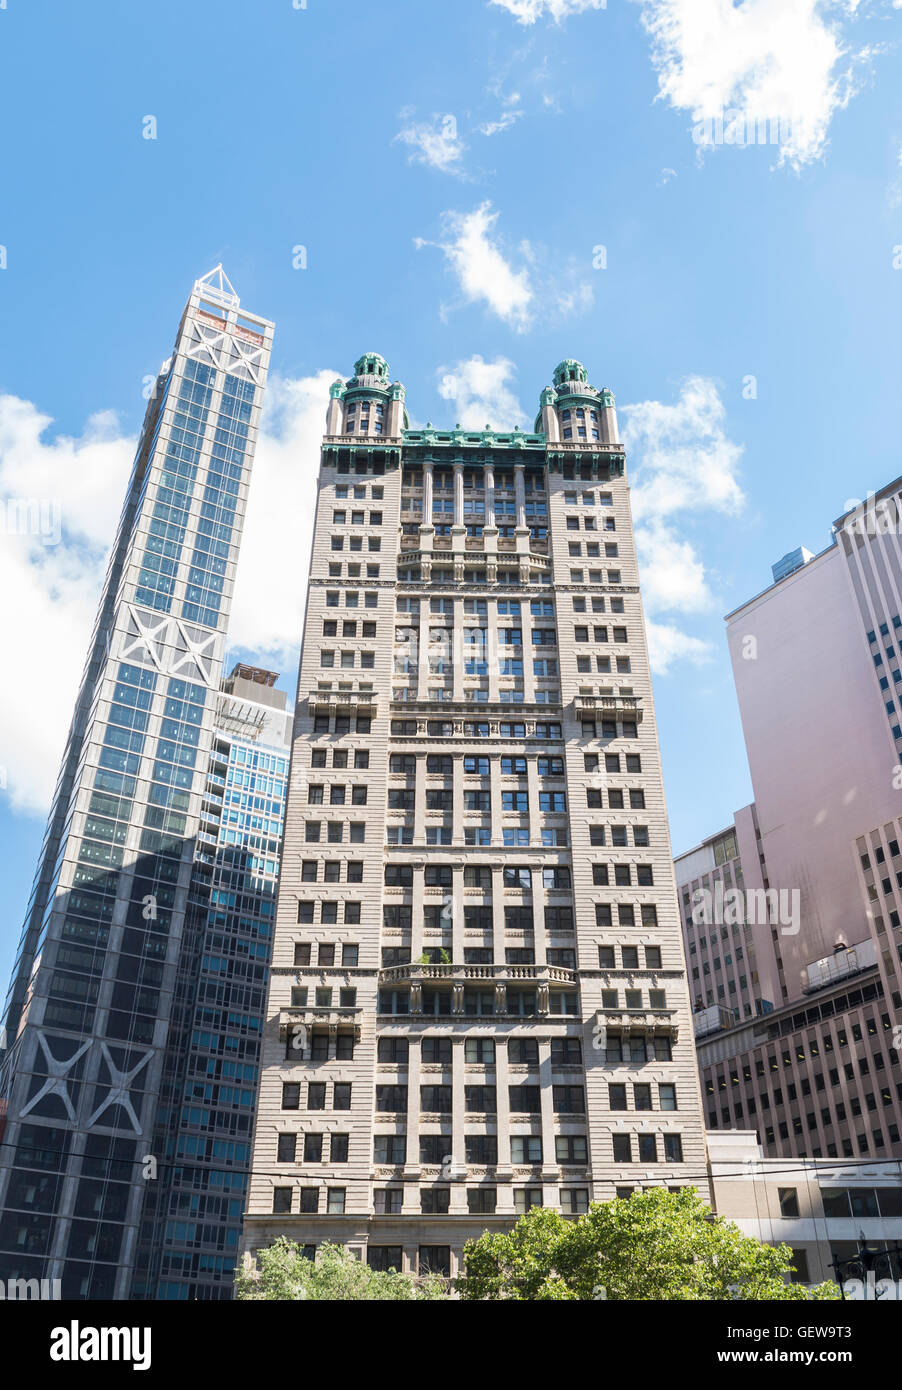 The landmarked Park Row Building in New York. Stock Photo